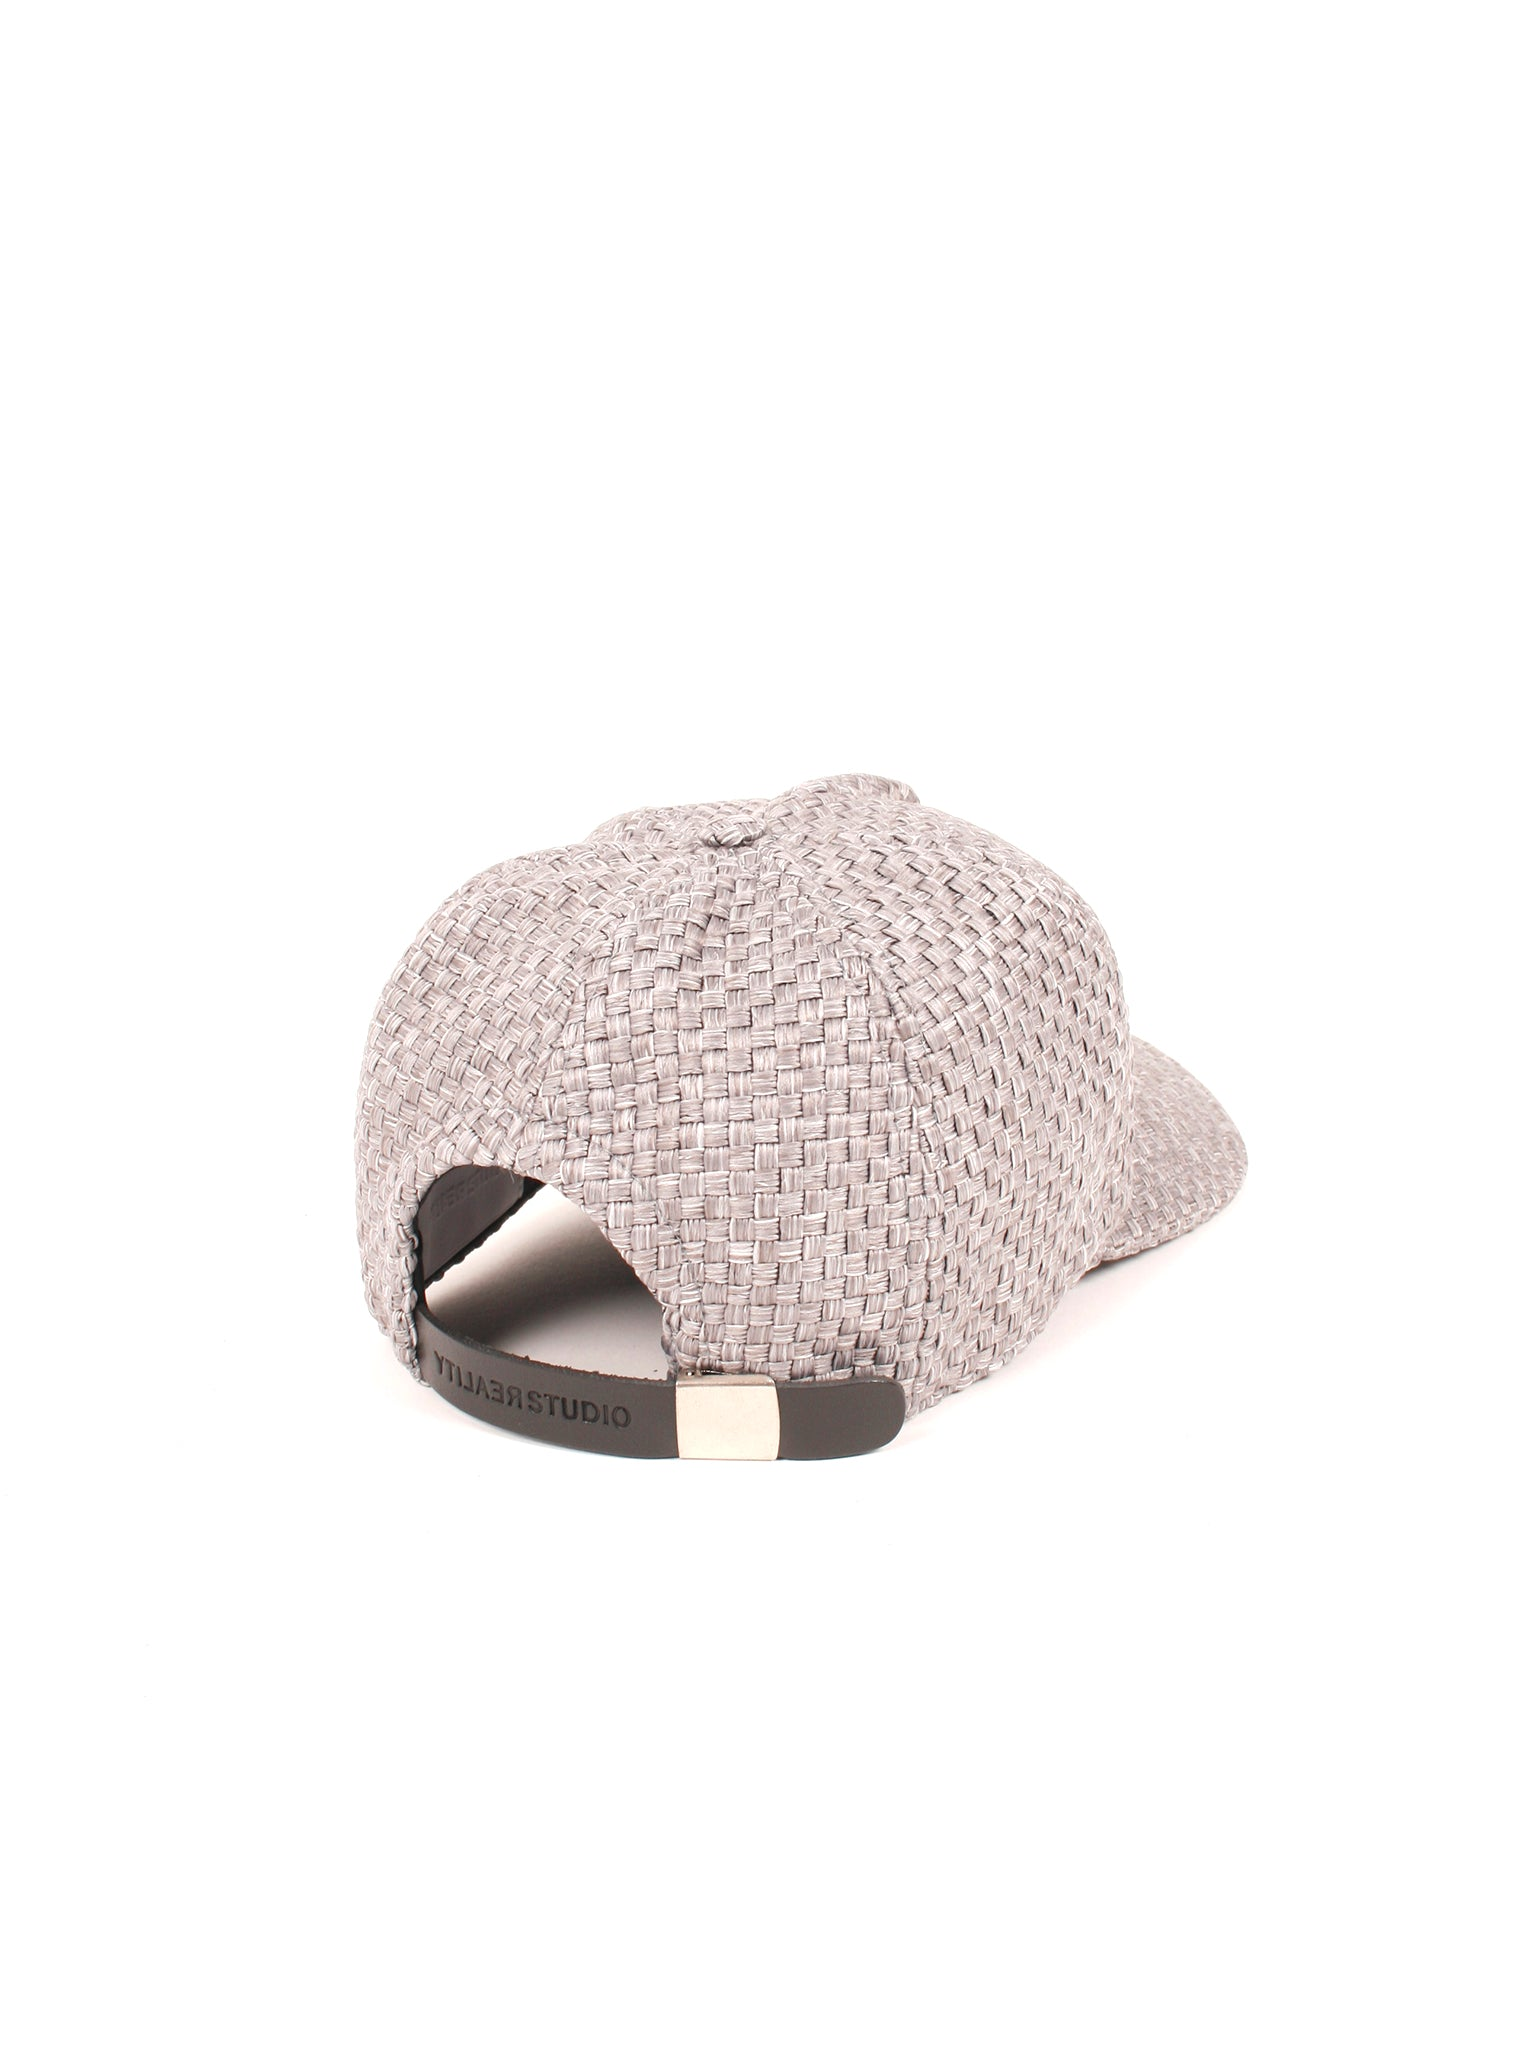 Reality Studio Mario Cap Grey basket